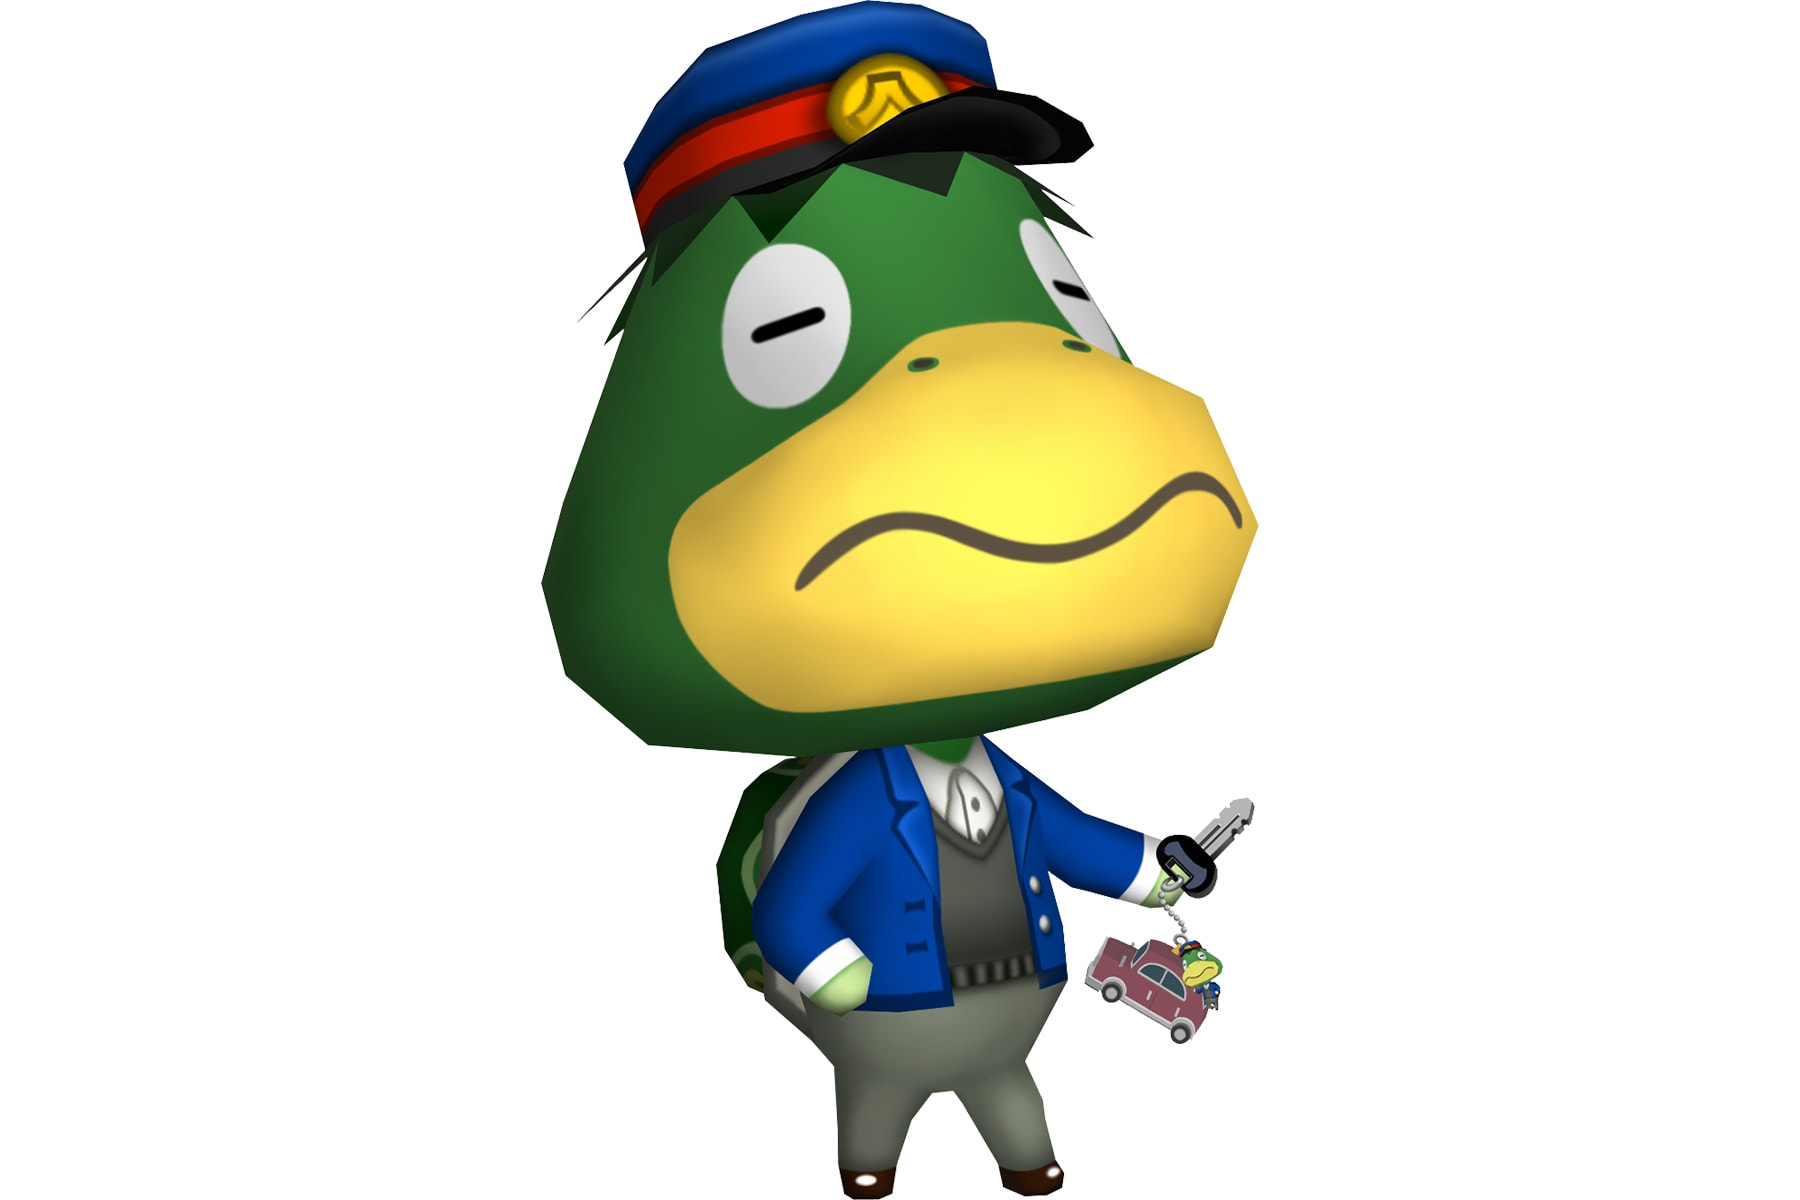 Kapp'n animal crossing new horizons